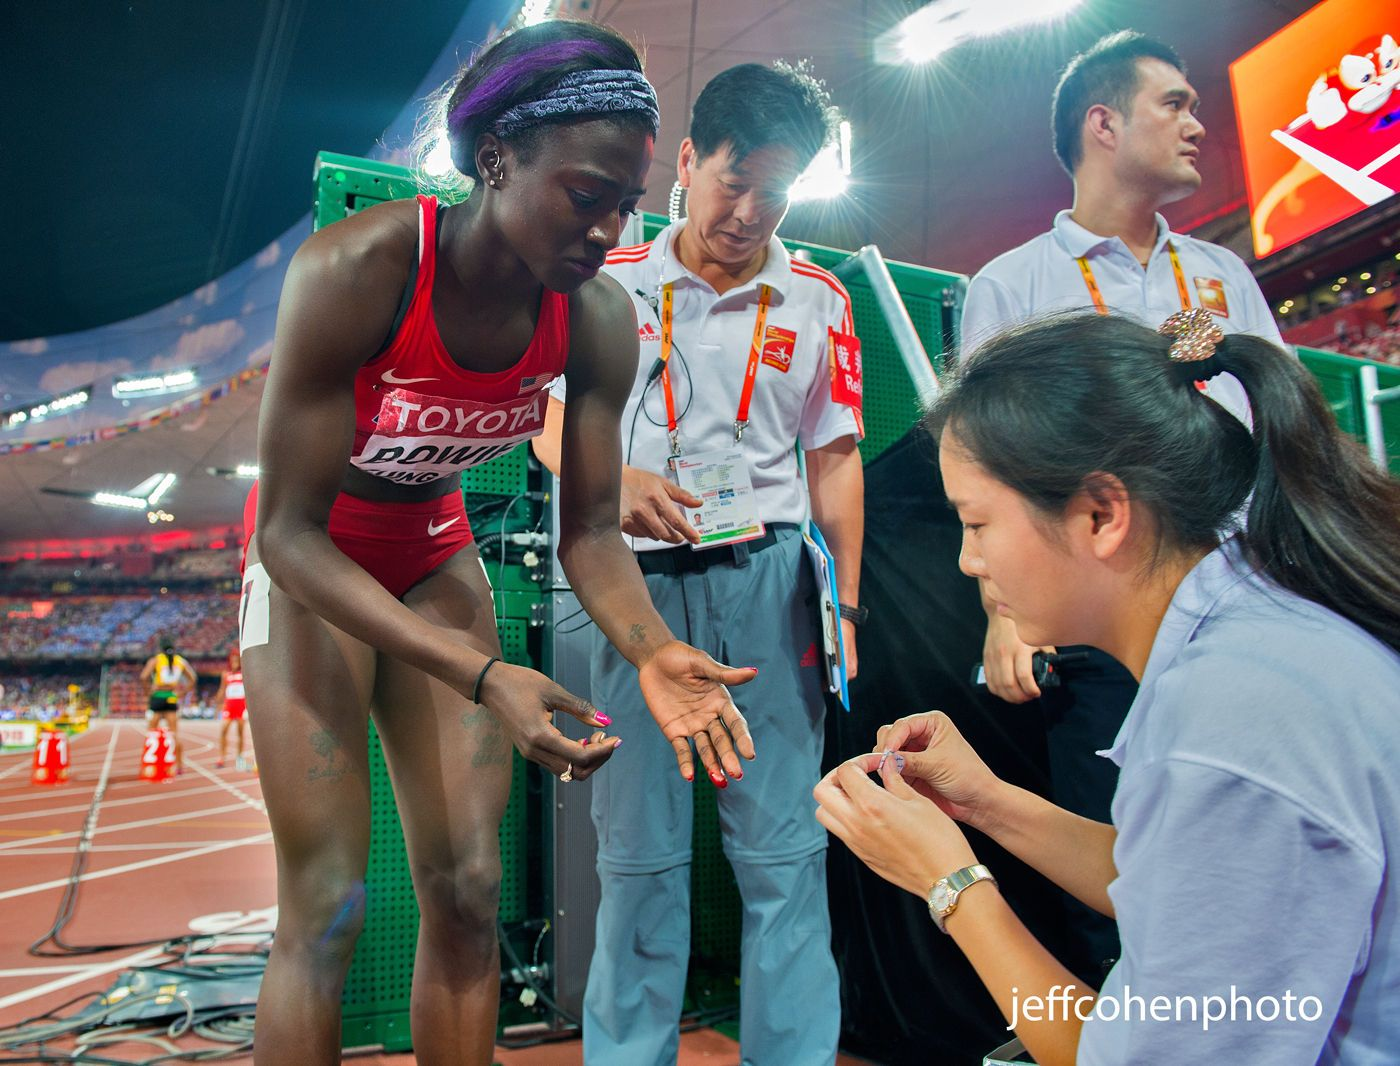 1beijing2015_night_3_tori_bowie_100m_final_cut_jeff_cohen_photo_14587_web.jpg